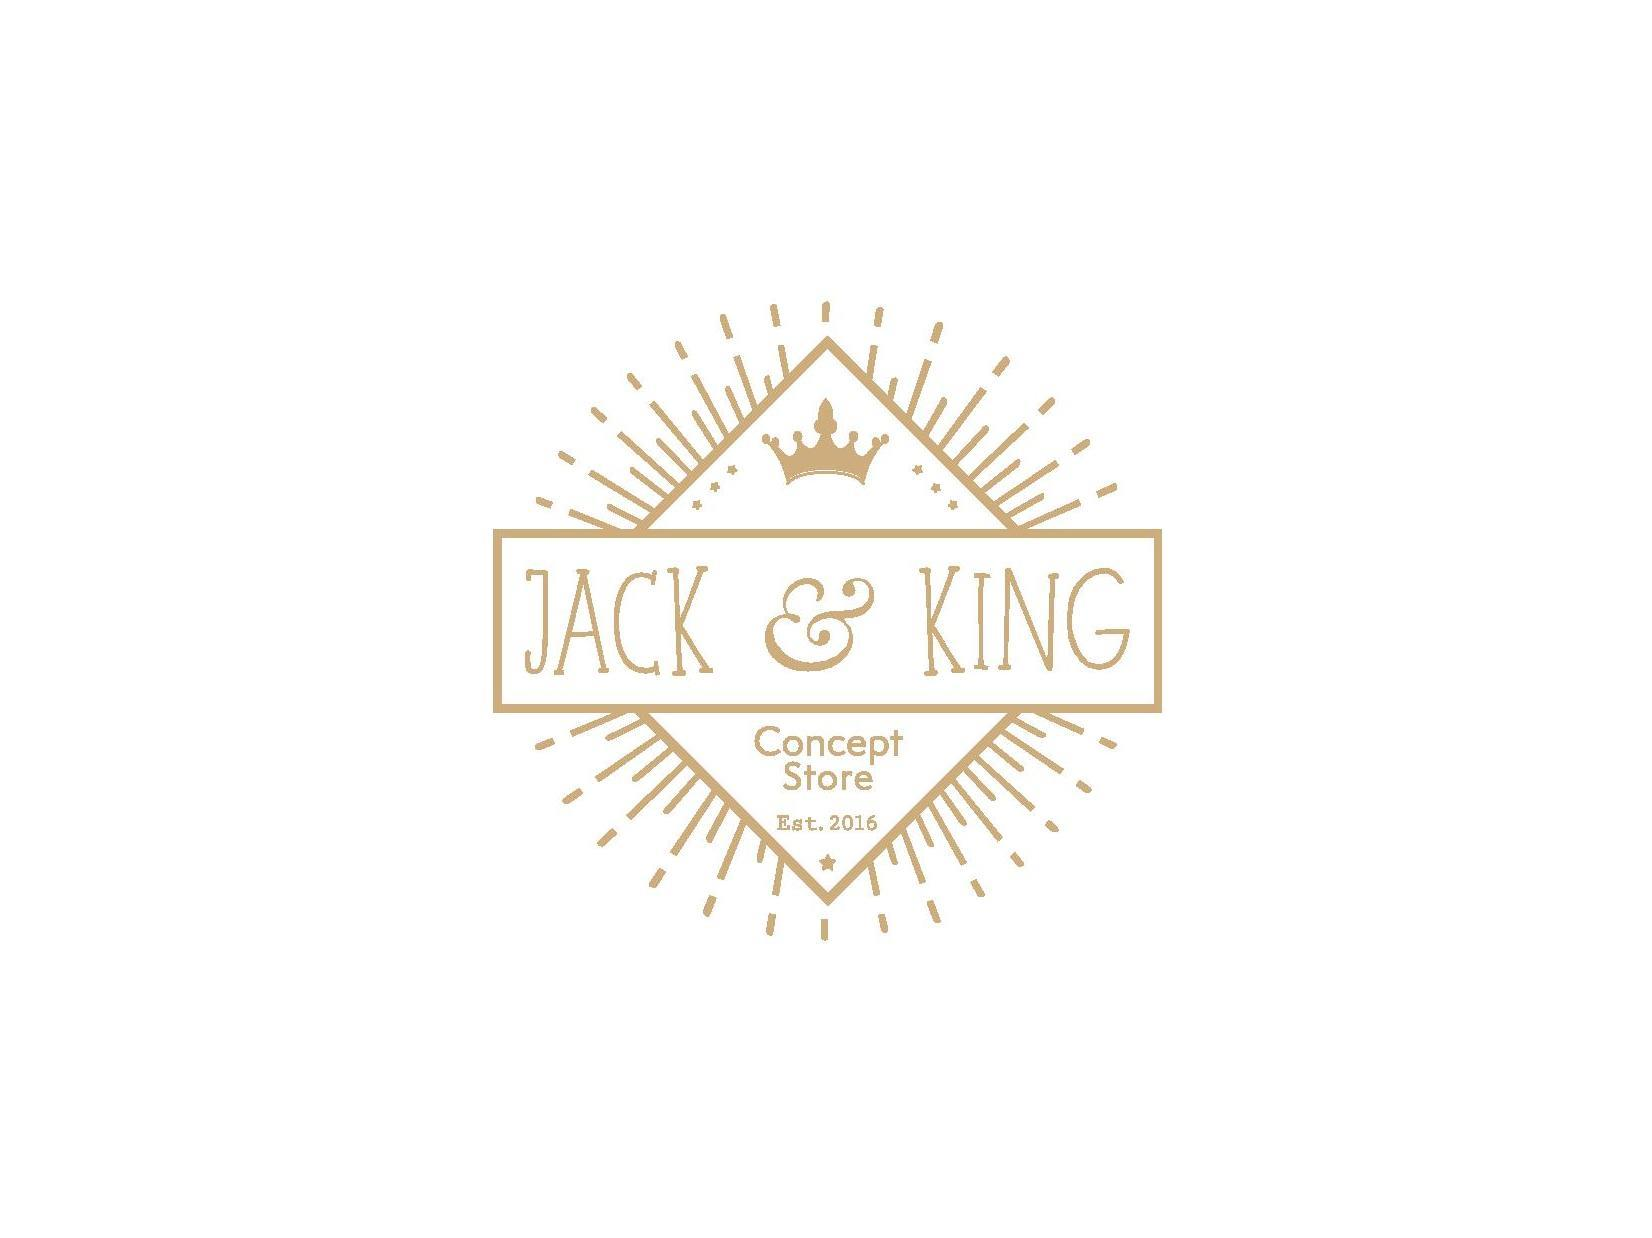 Jack & King Concept Store